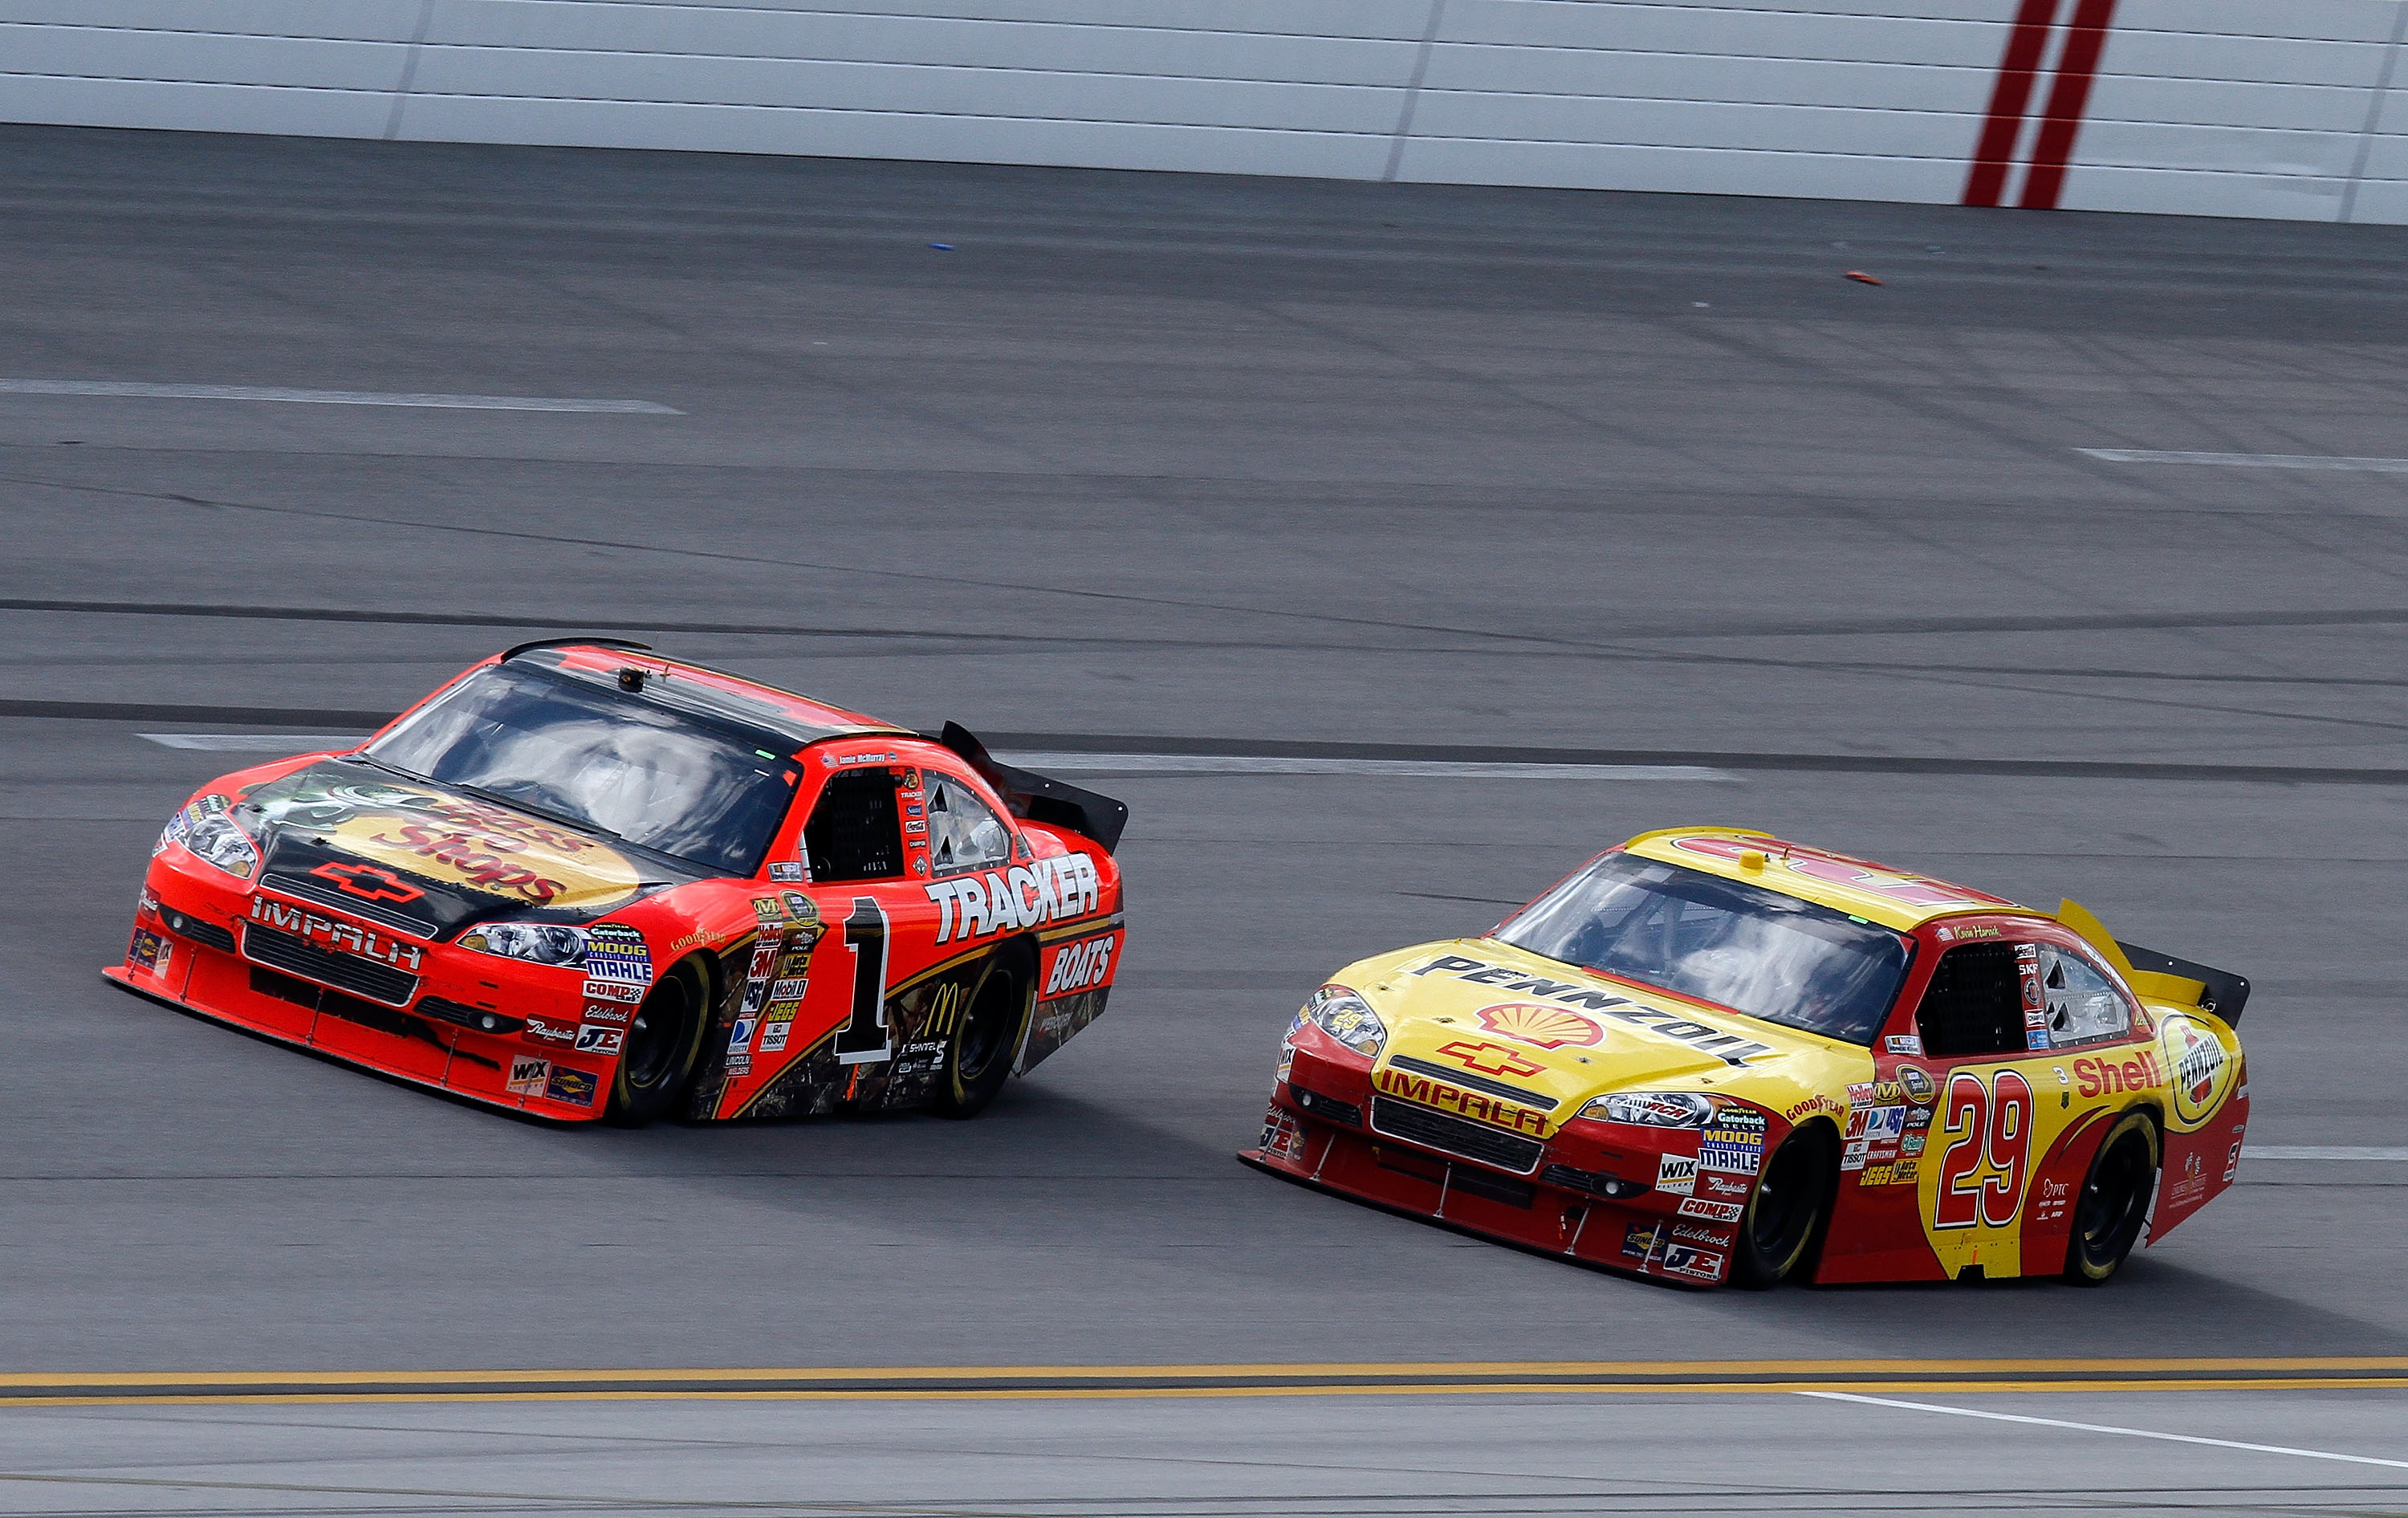 This stirring last lap pass led to Harvick's first win of 2010.